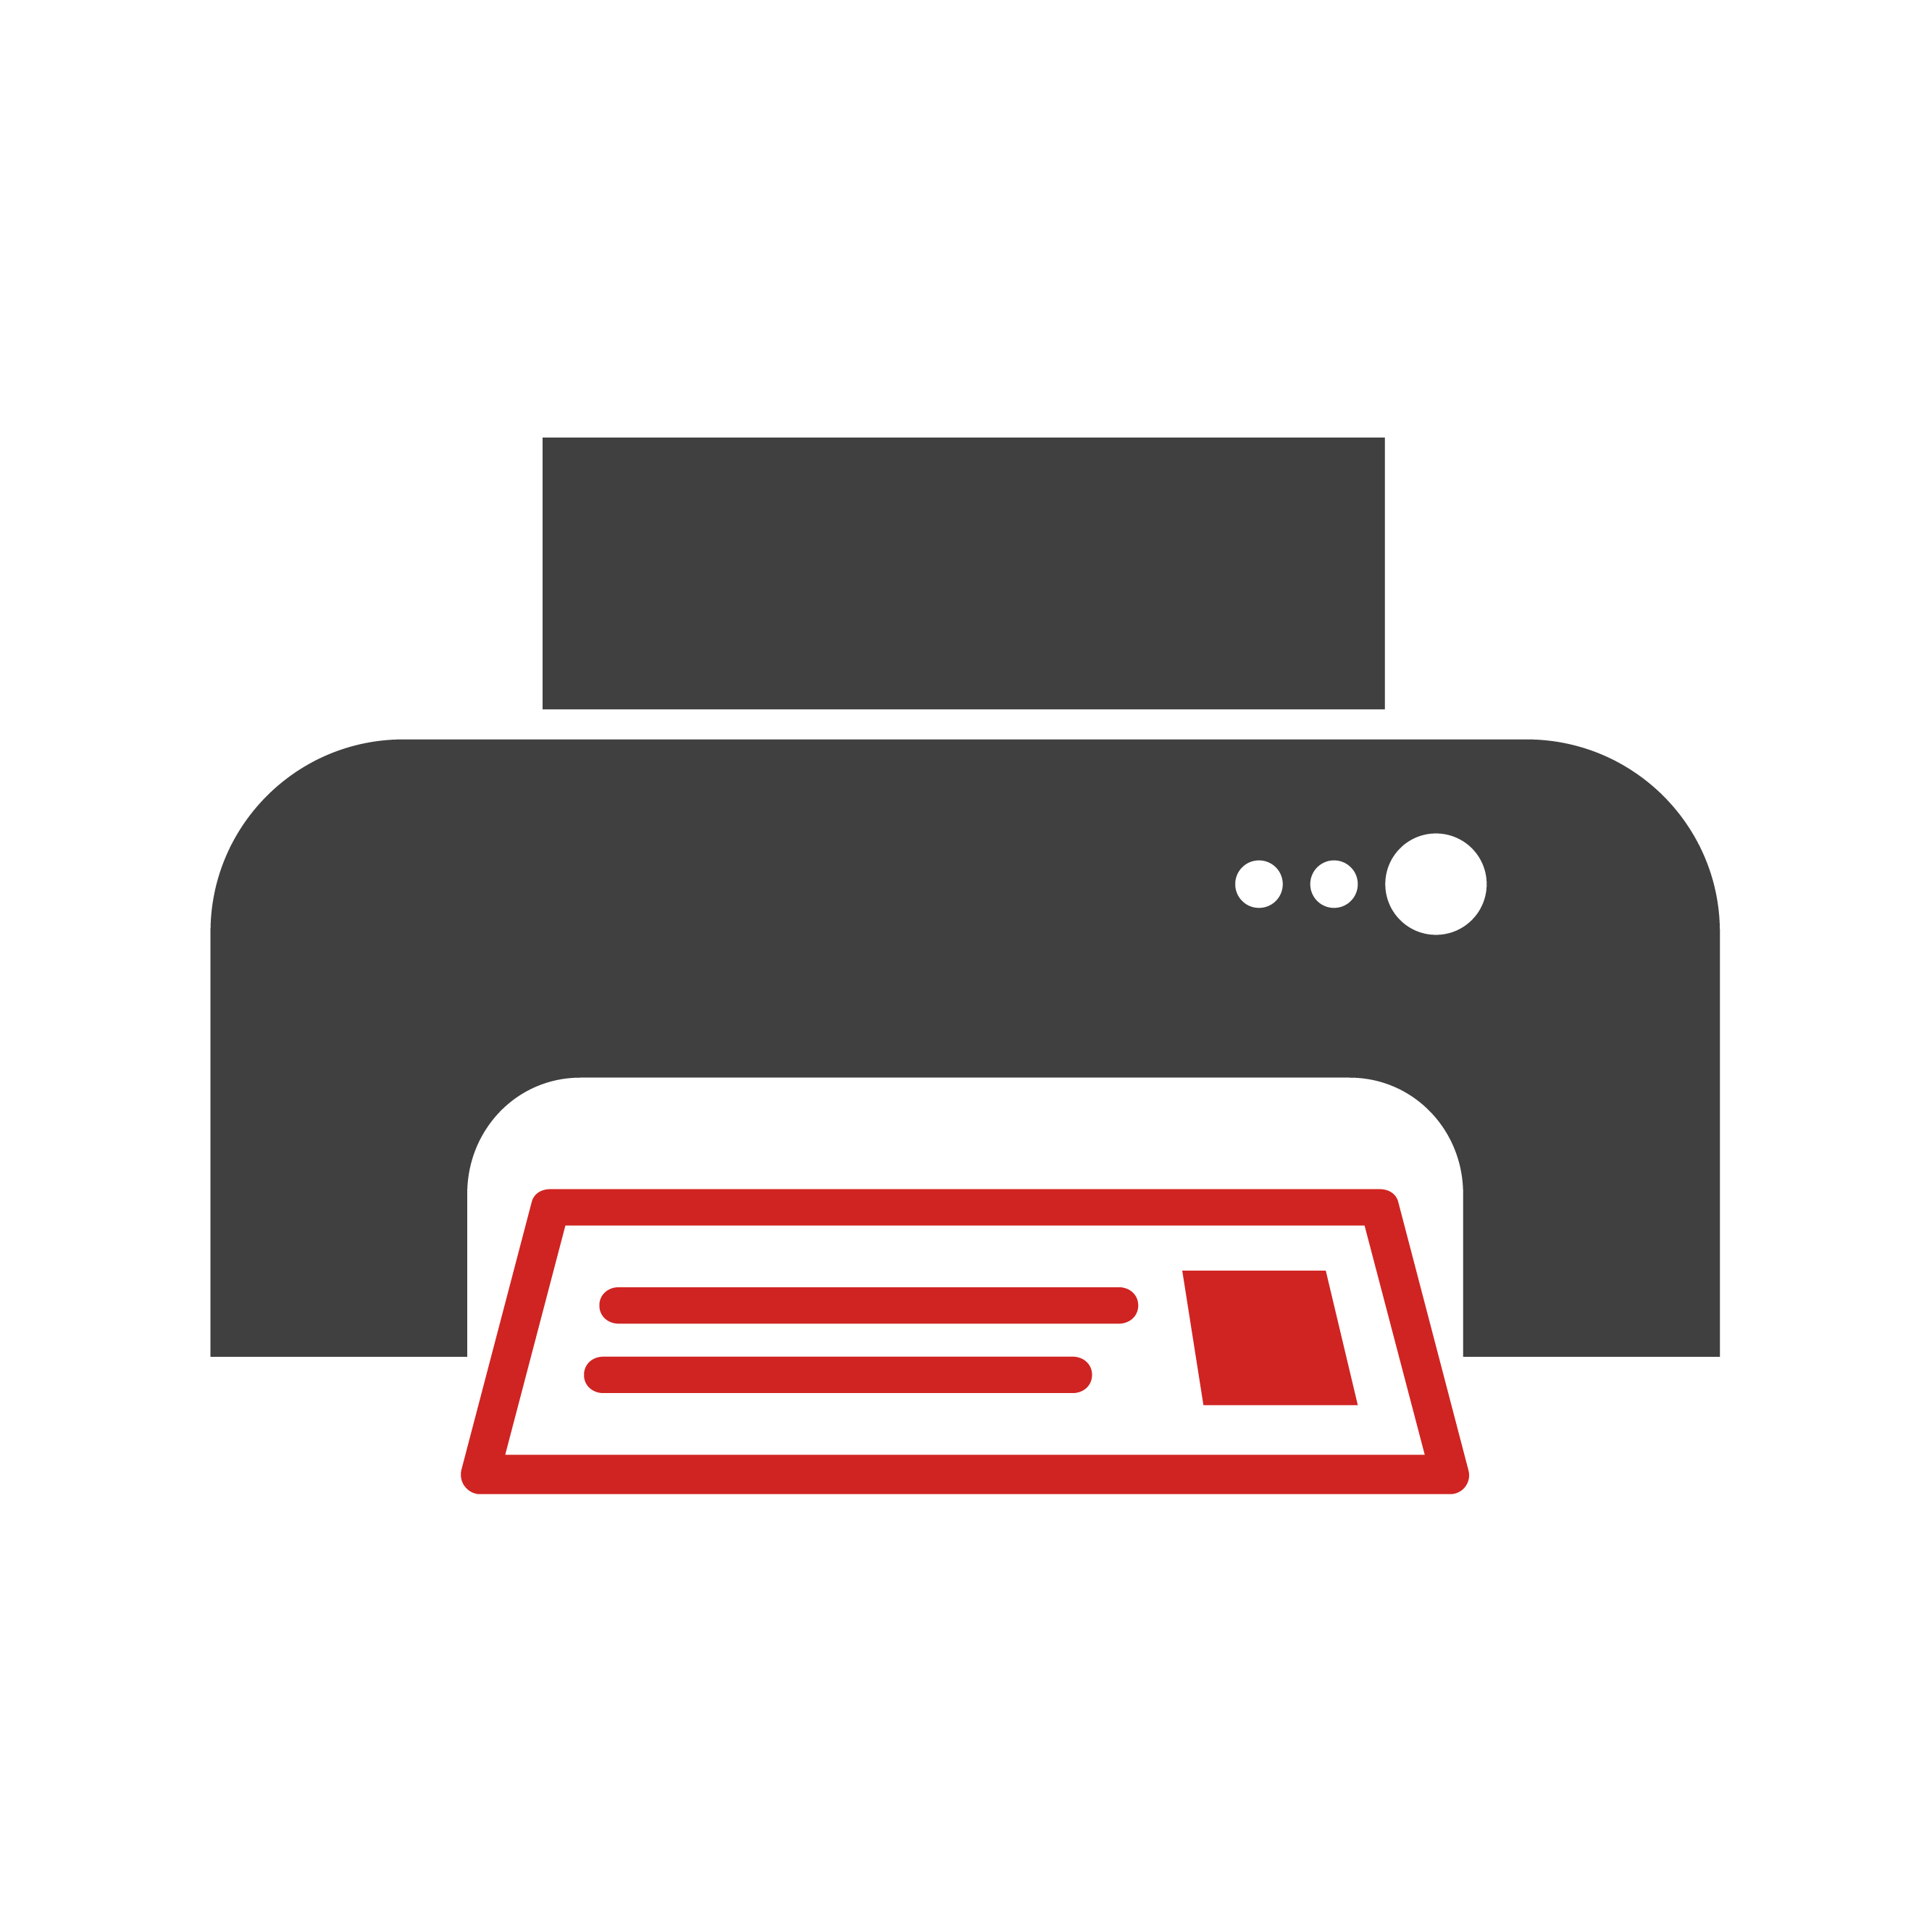 Icon for Printing